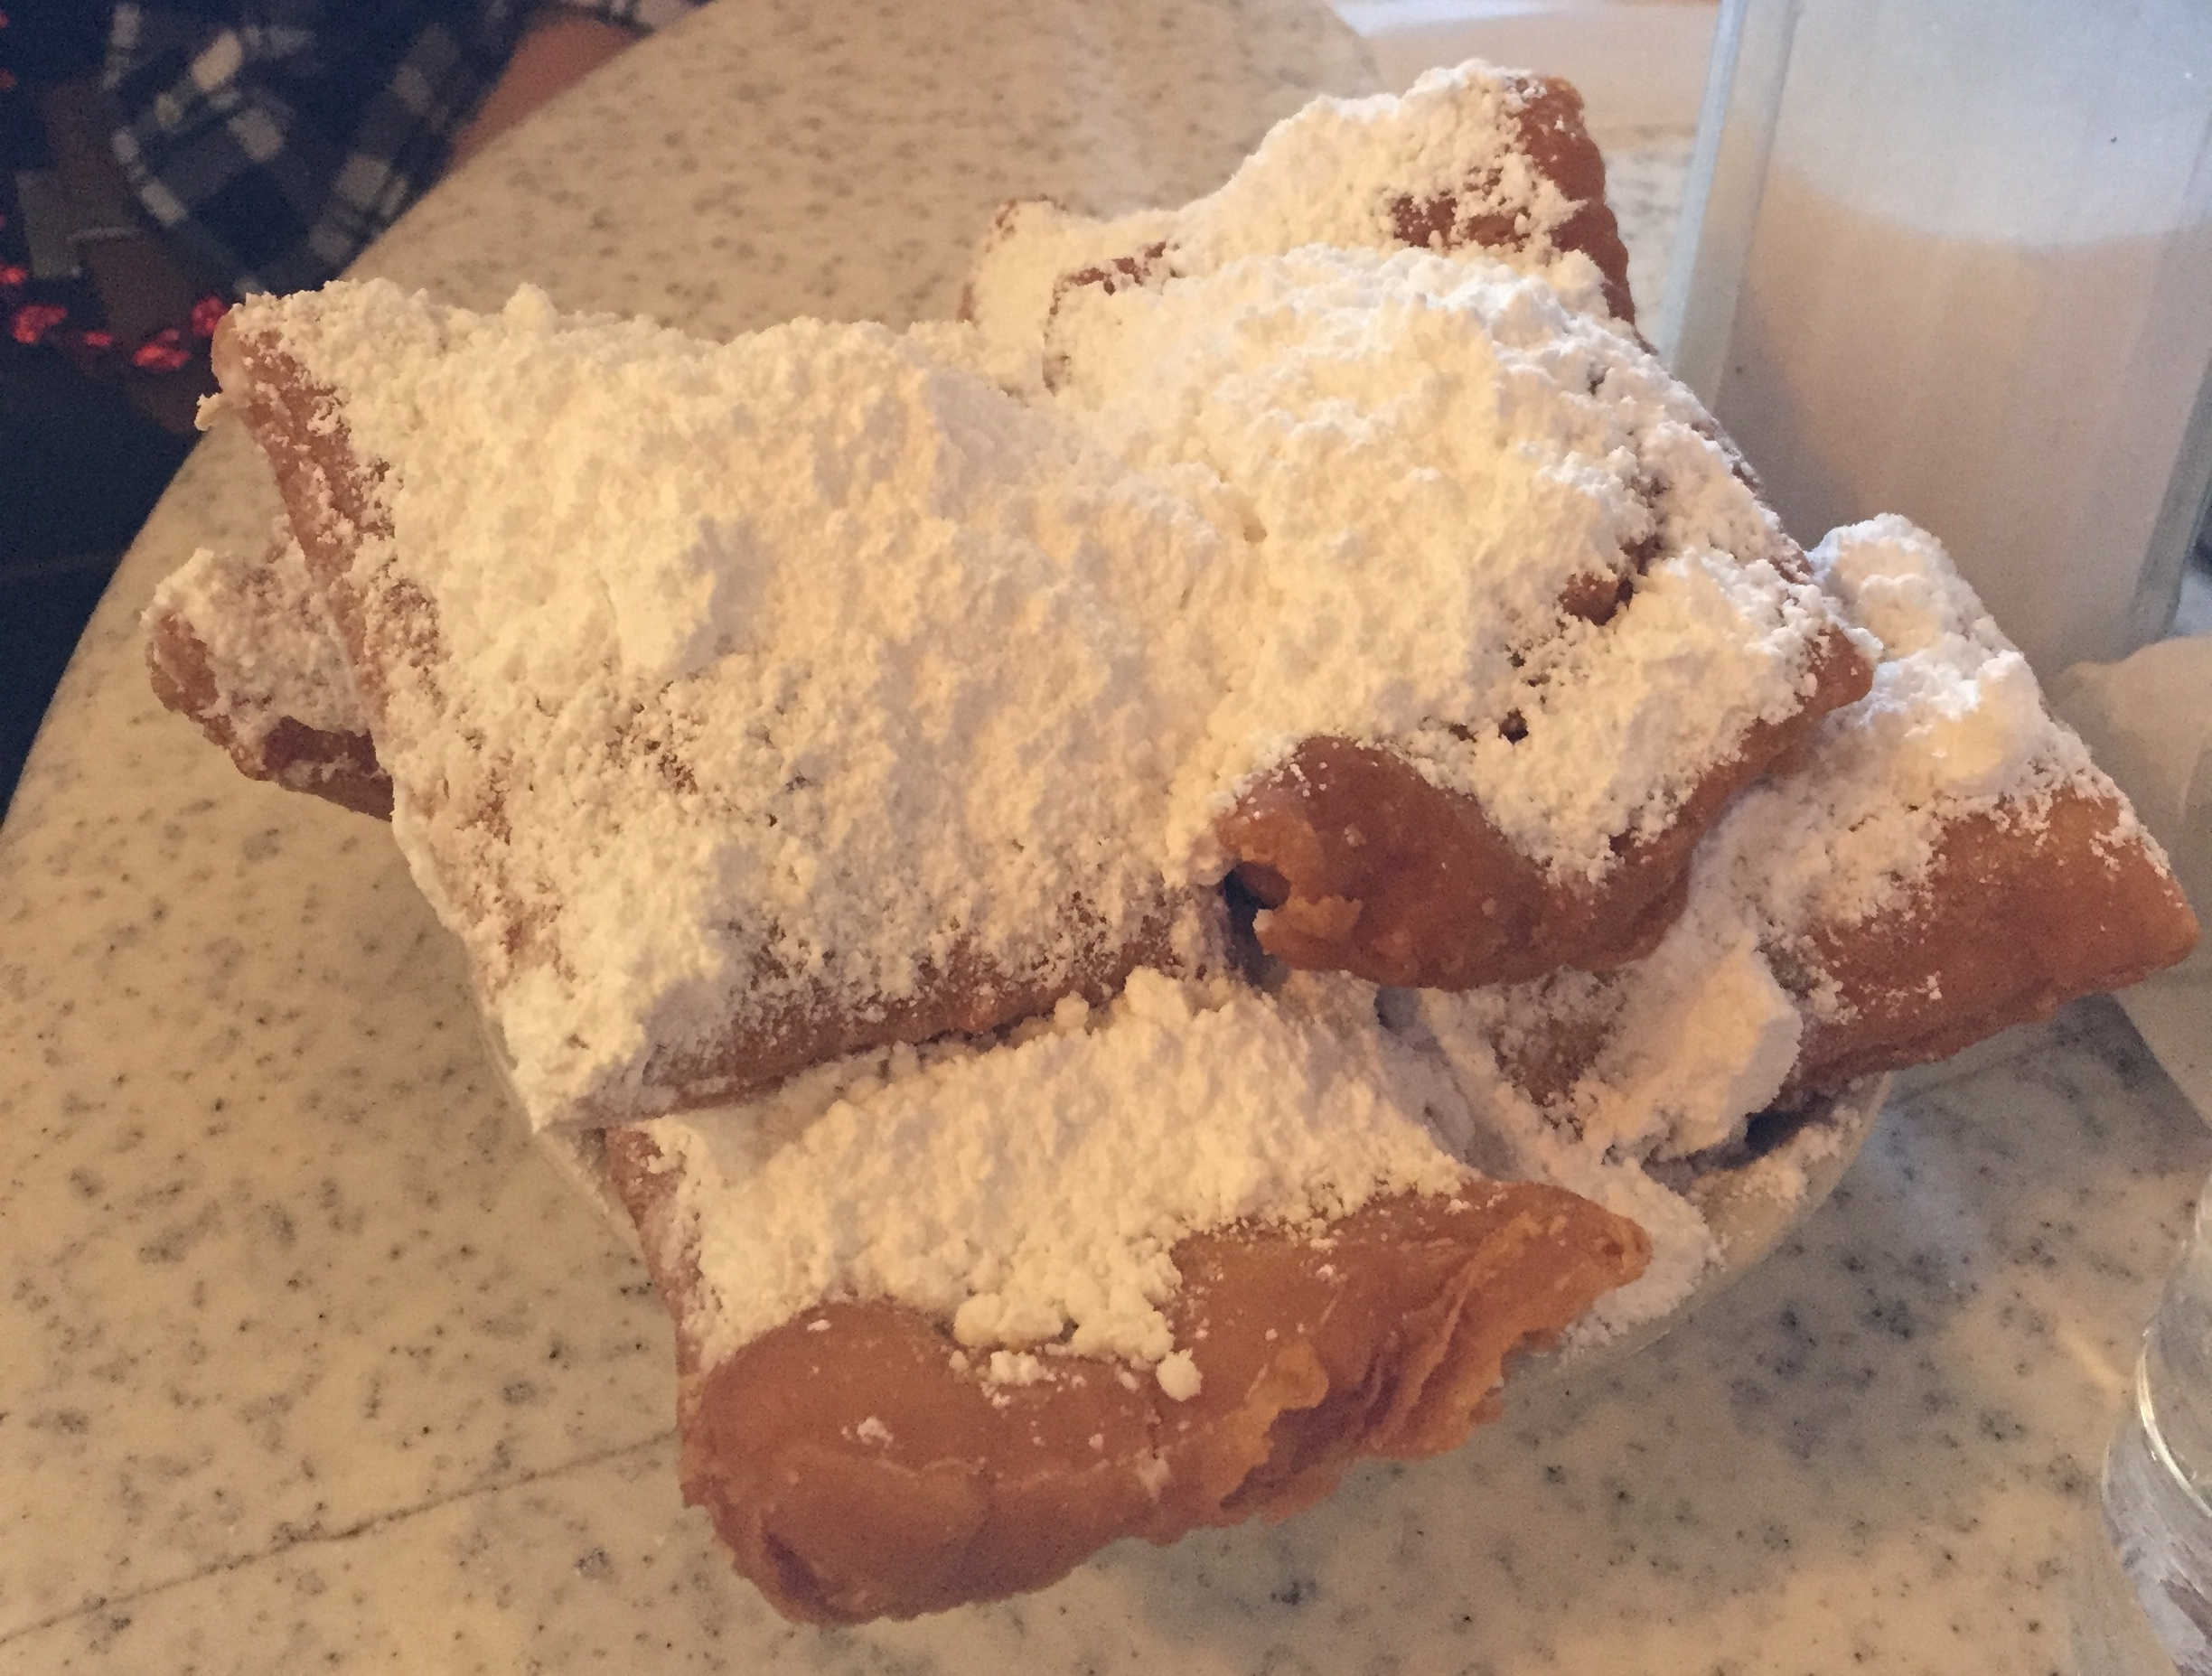 Besides King Cake, Beignets are must eat while visting New orelans for Mardi Gras.